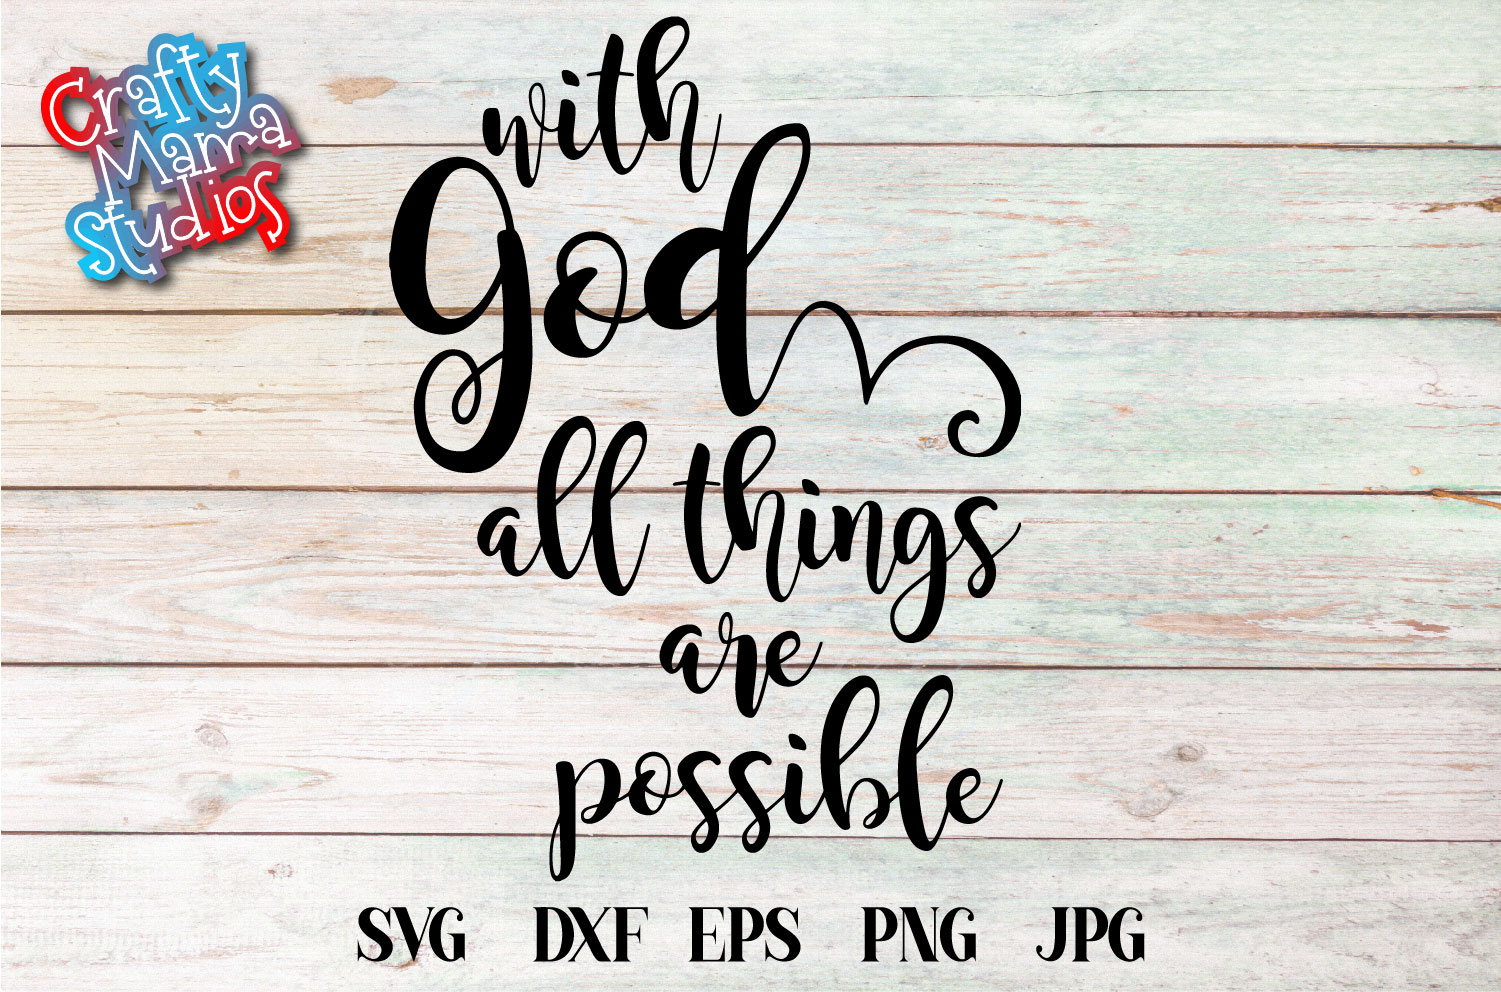 With God All Things Are Possible SVG, Faith In God SVG example image 2